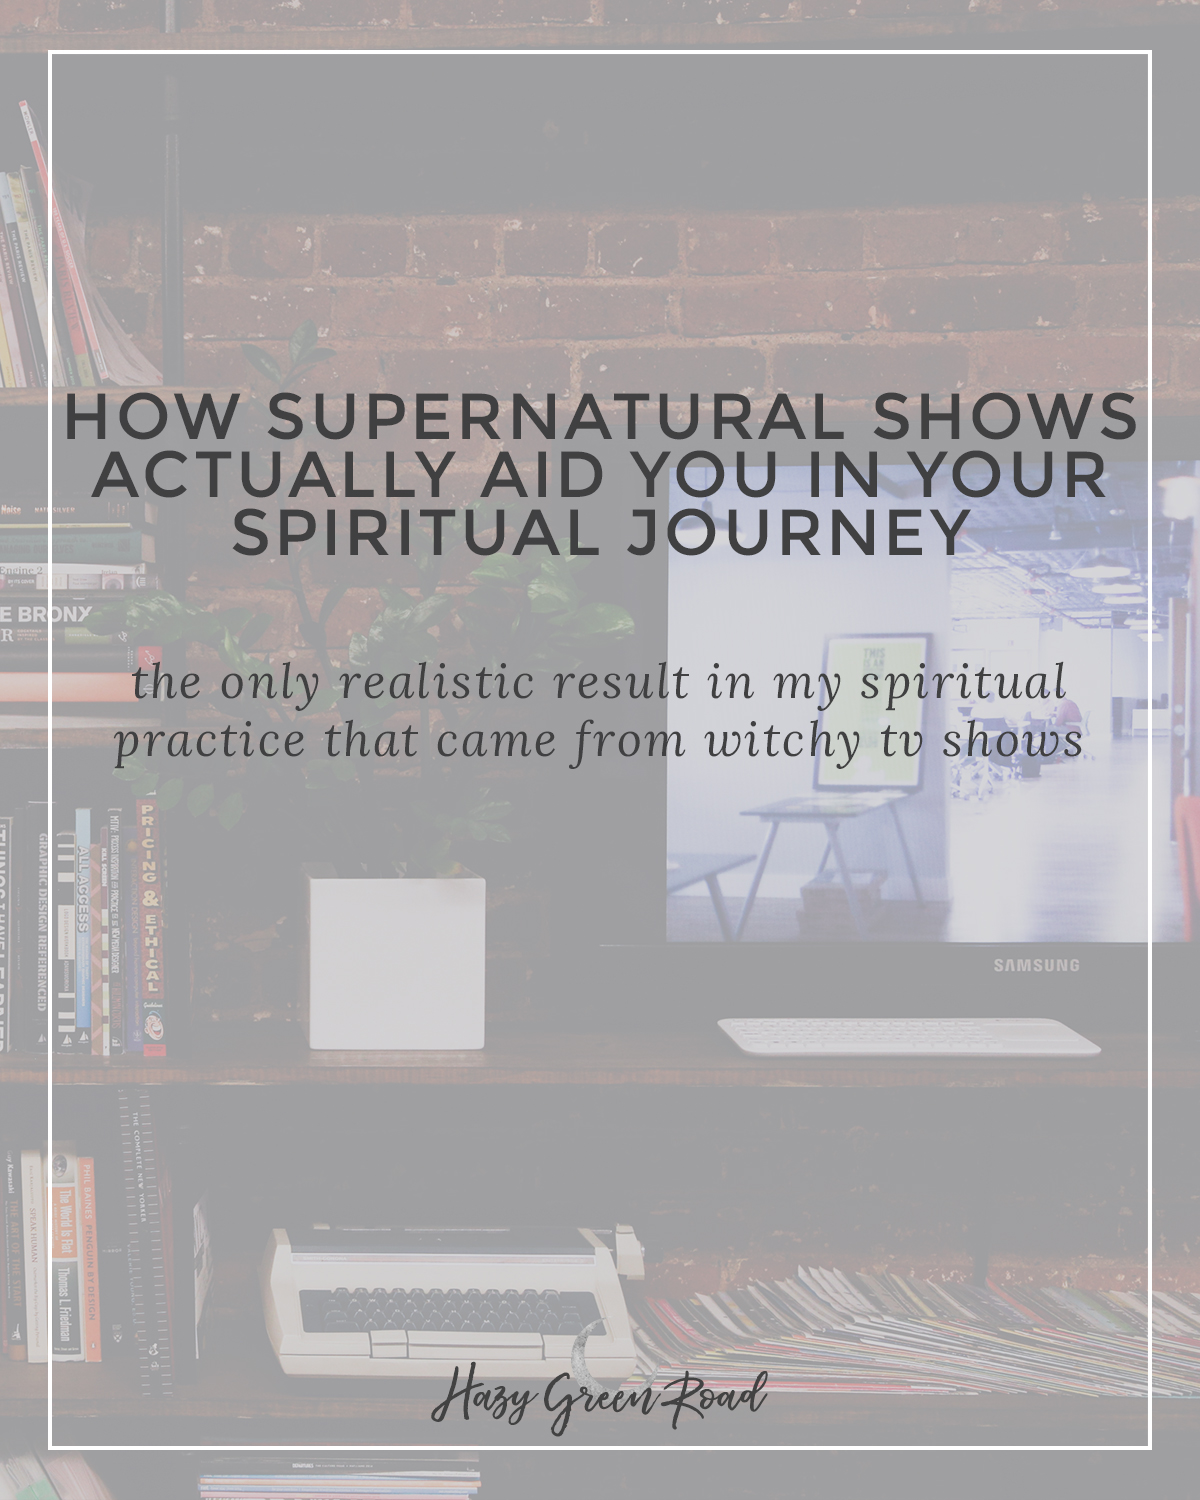 Here's how supernatural shows ACTUALLY aid you in your spiritually journey. It's not what you'd think.